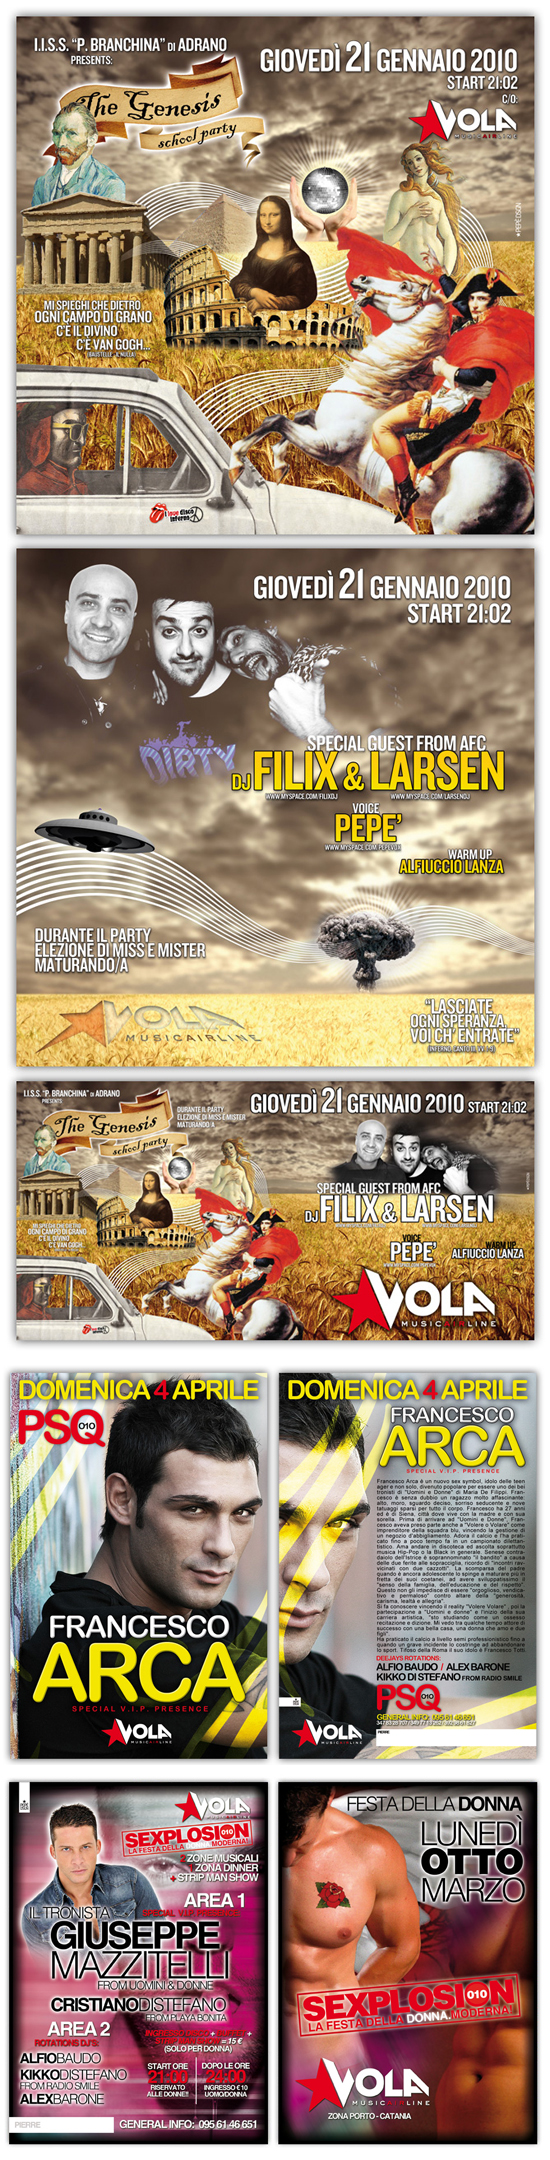 Vola Club – Catania (IT)